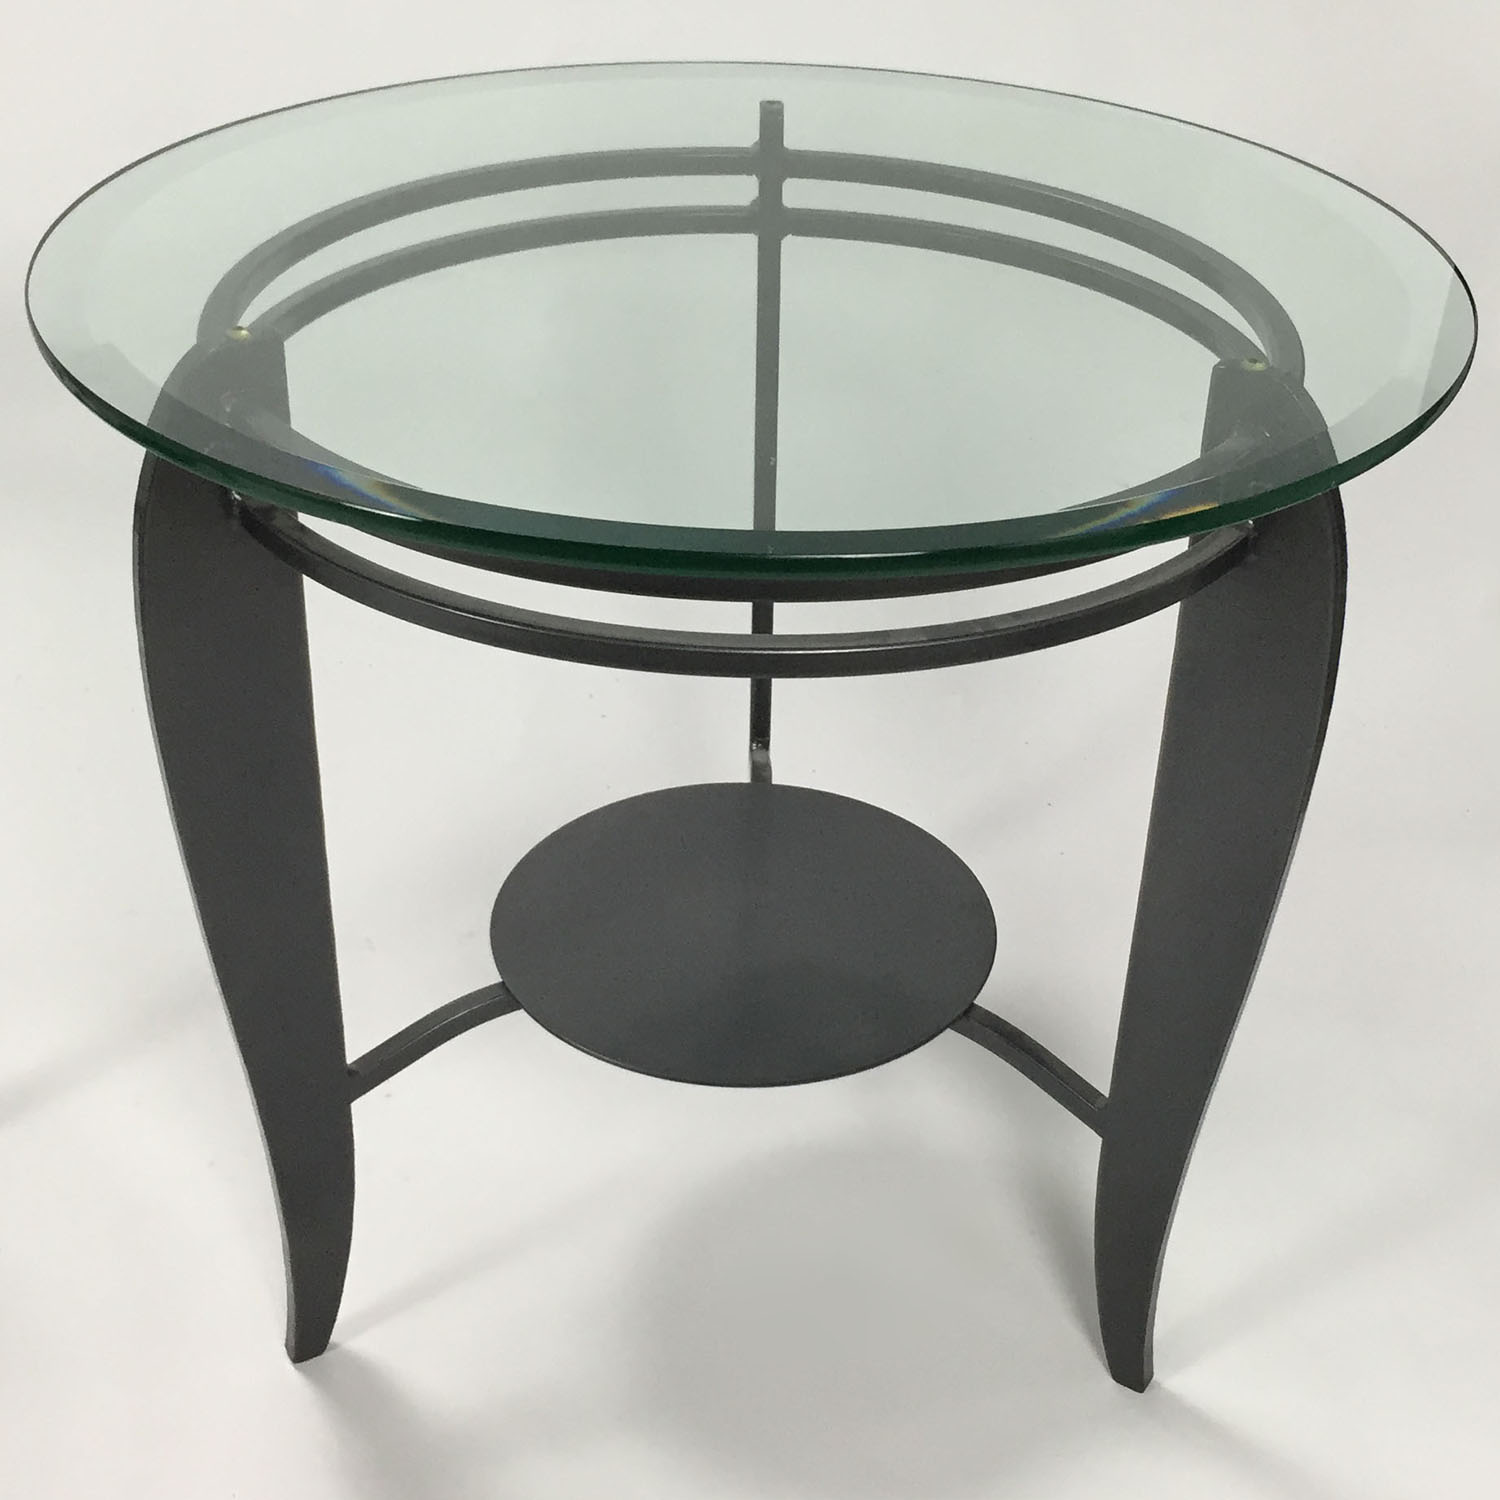 CB2 CB2 Glass Side Table nj